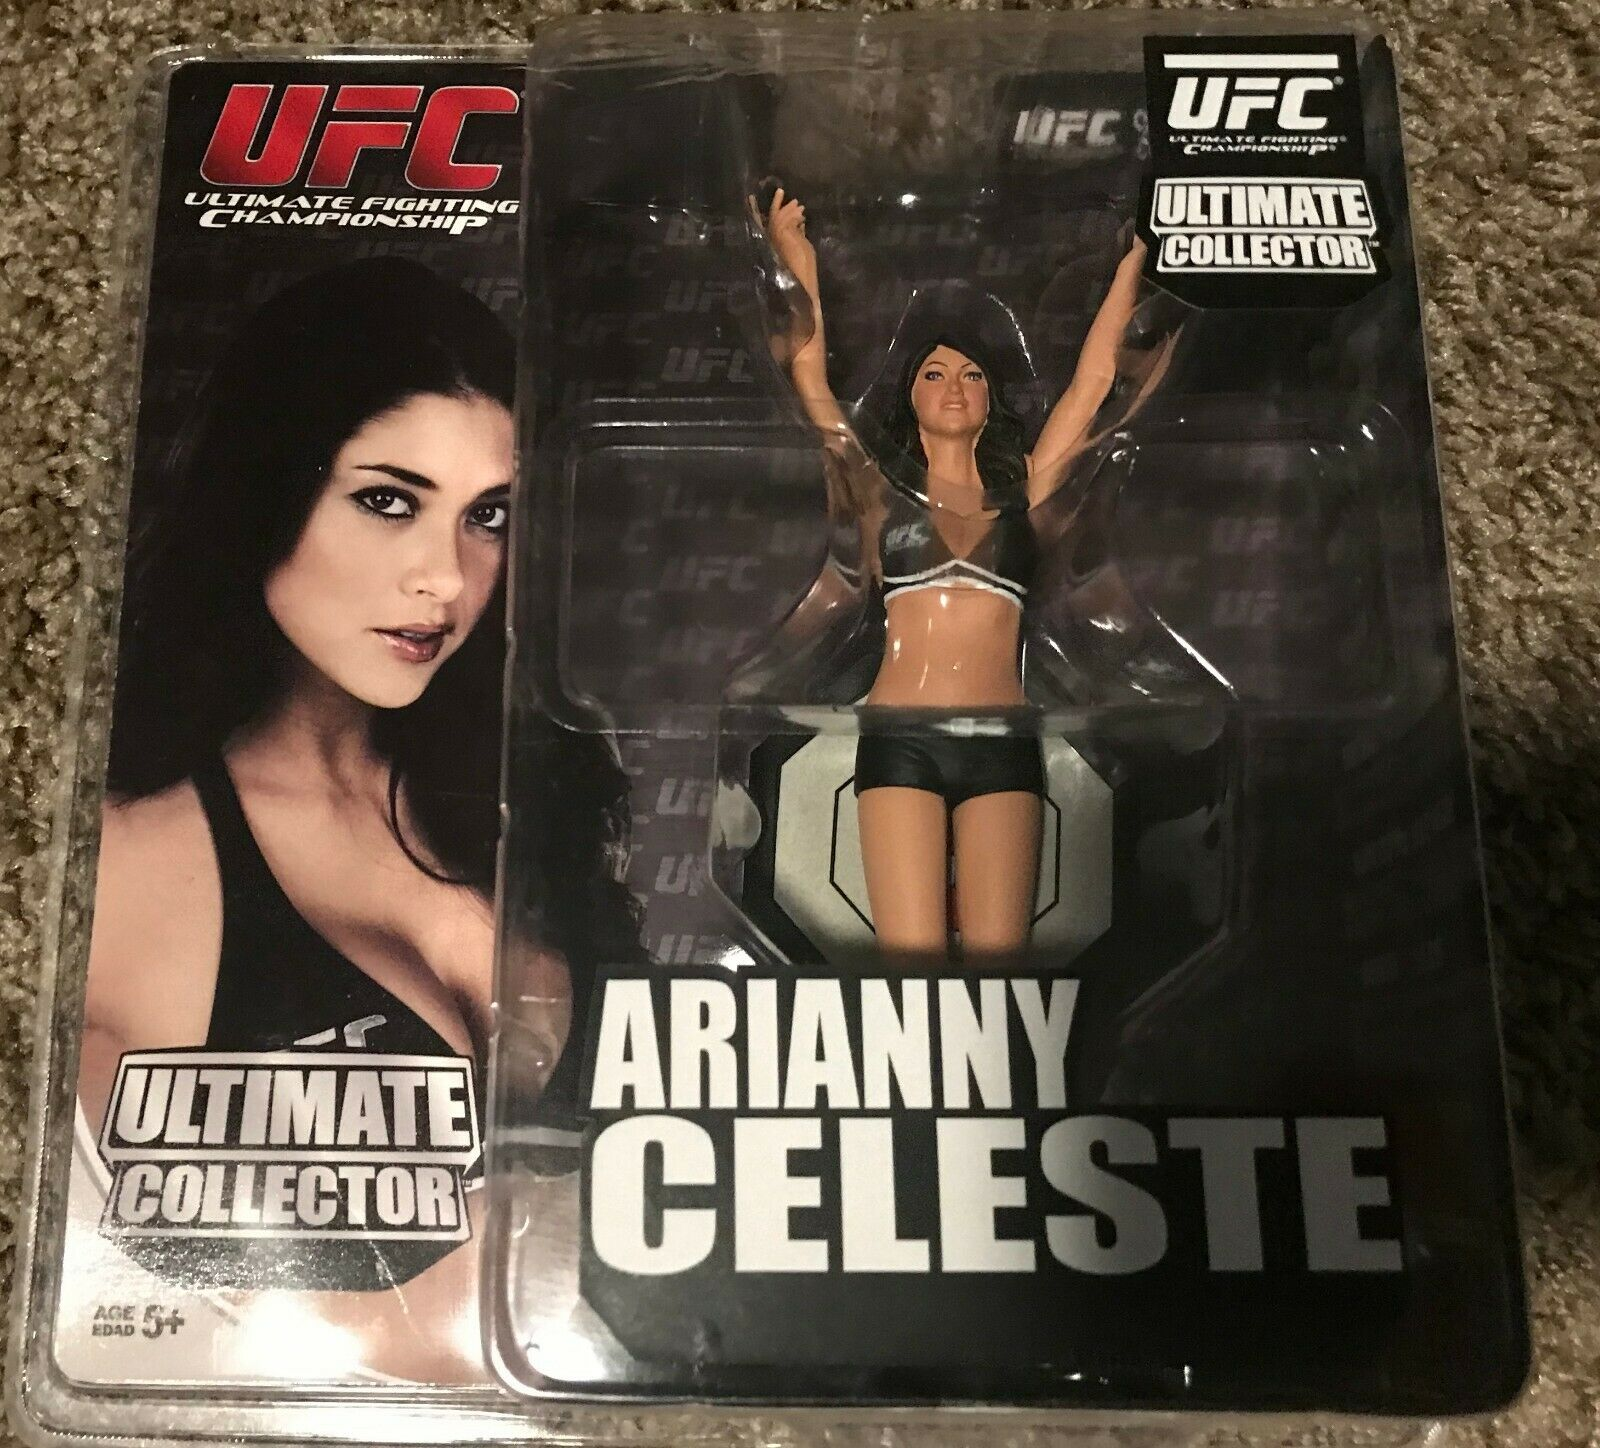 New Round 5 UFC ARIANNY CELESTE Limited Edition -- Mint Condition - Rare